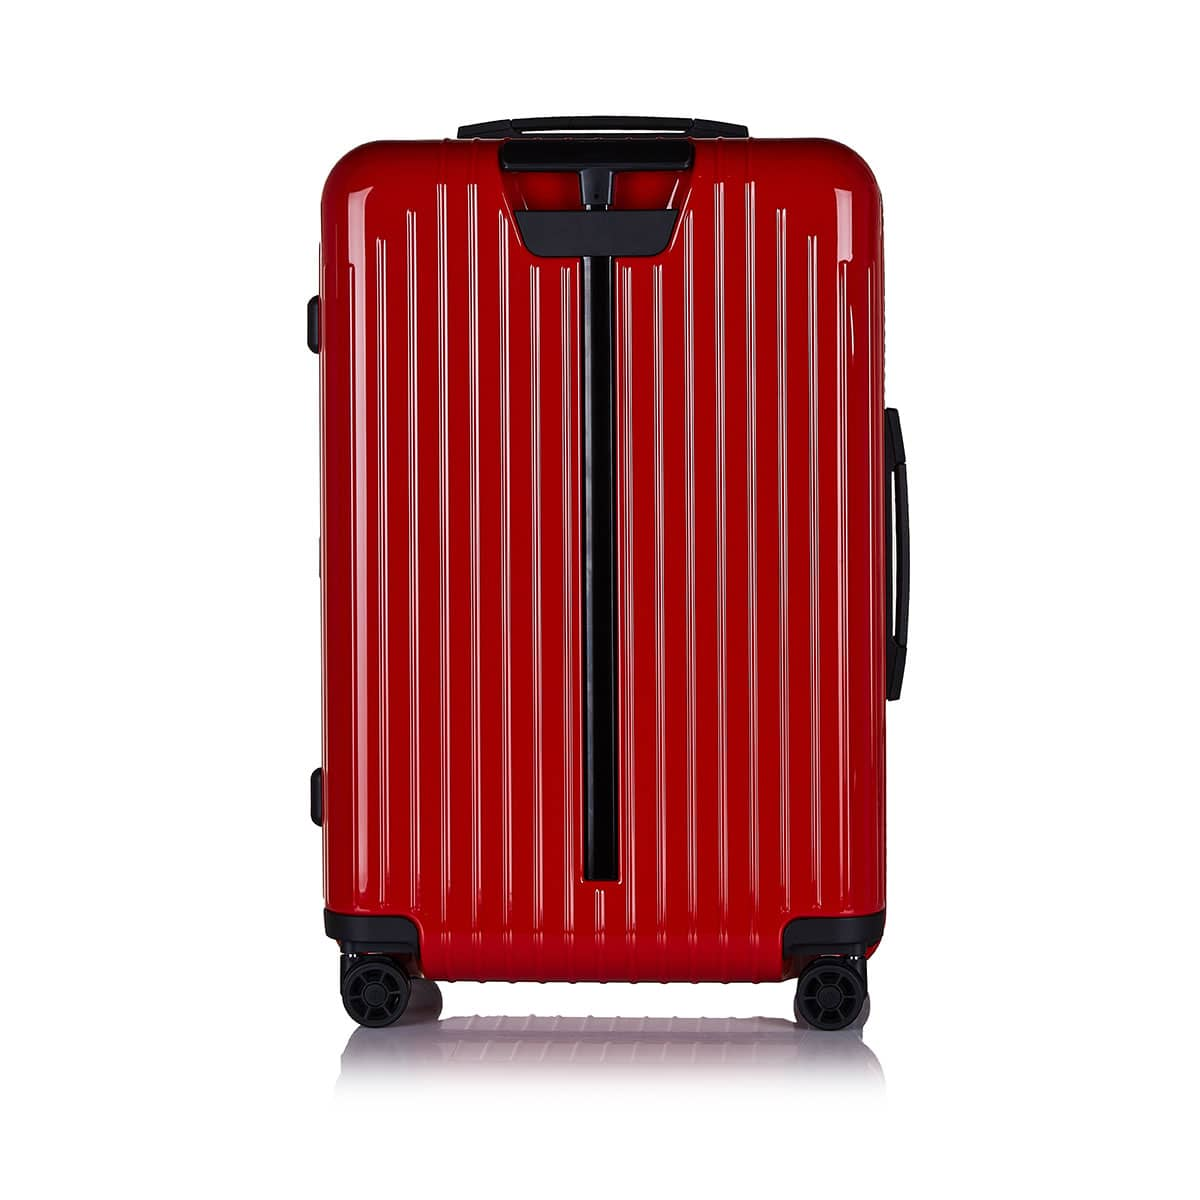 Check-In M suitcase